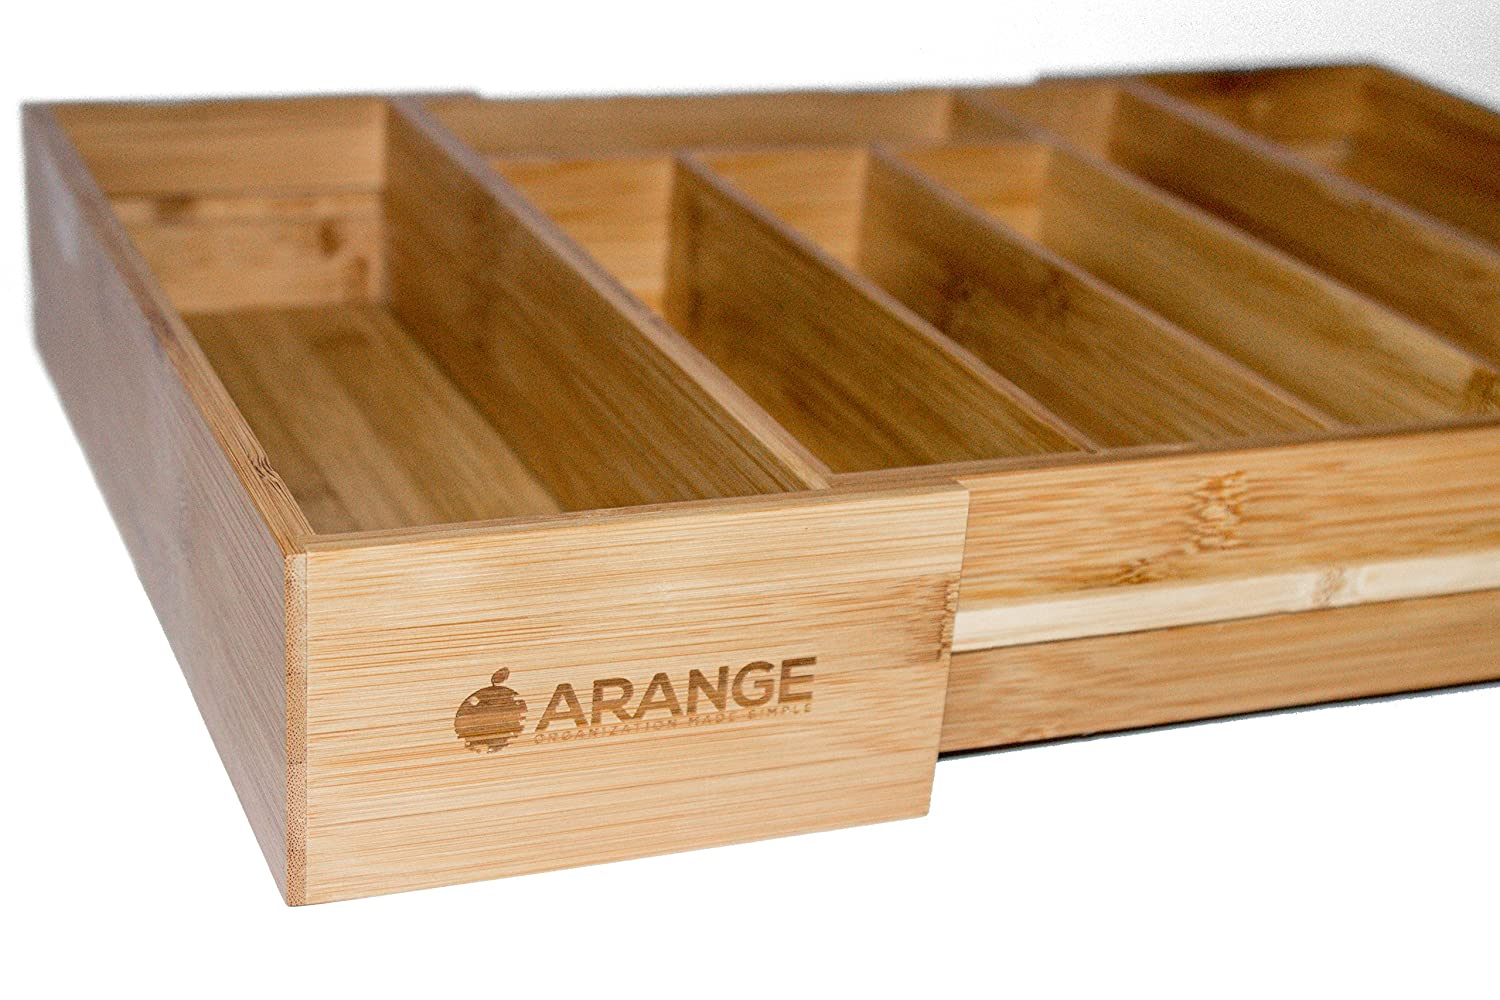 Expandable Bamboo Wood Cutlery Tray Drawer Utensil Organizer for silverware and cooking utensils with 7 sections 2 Adjustable parts to fit comfortable in kitchen drawers by Arange